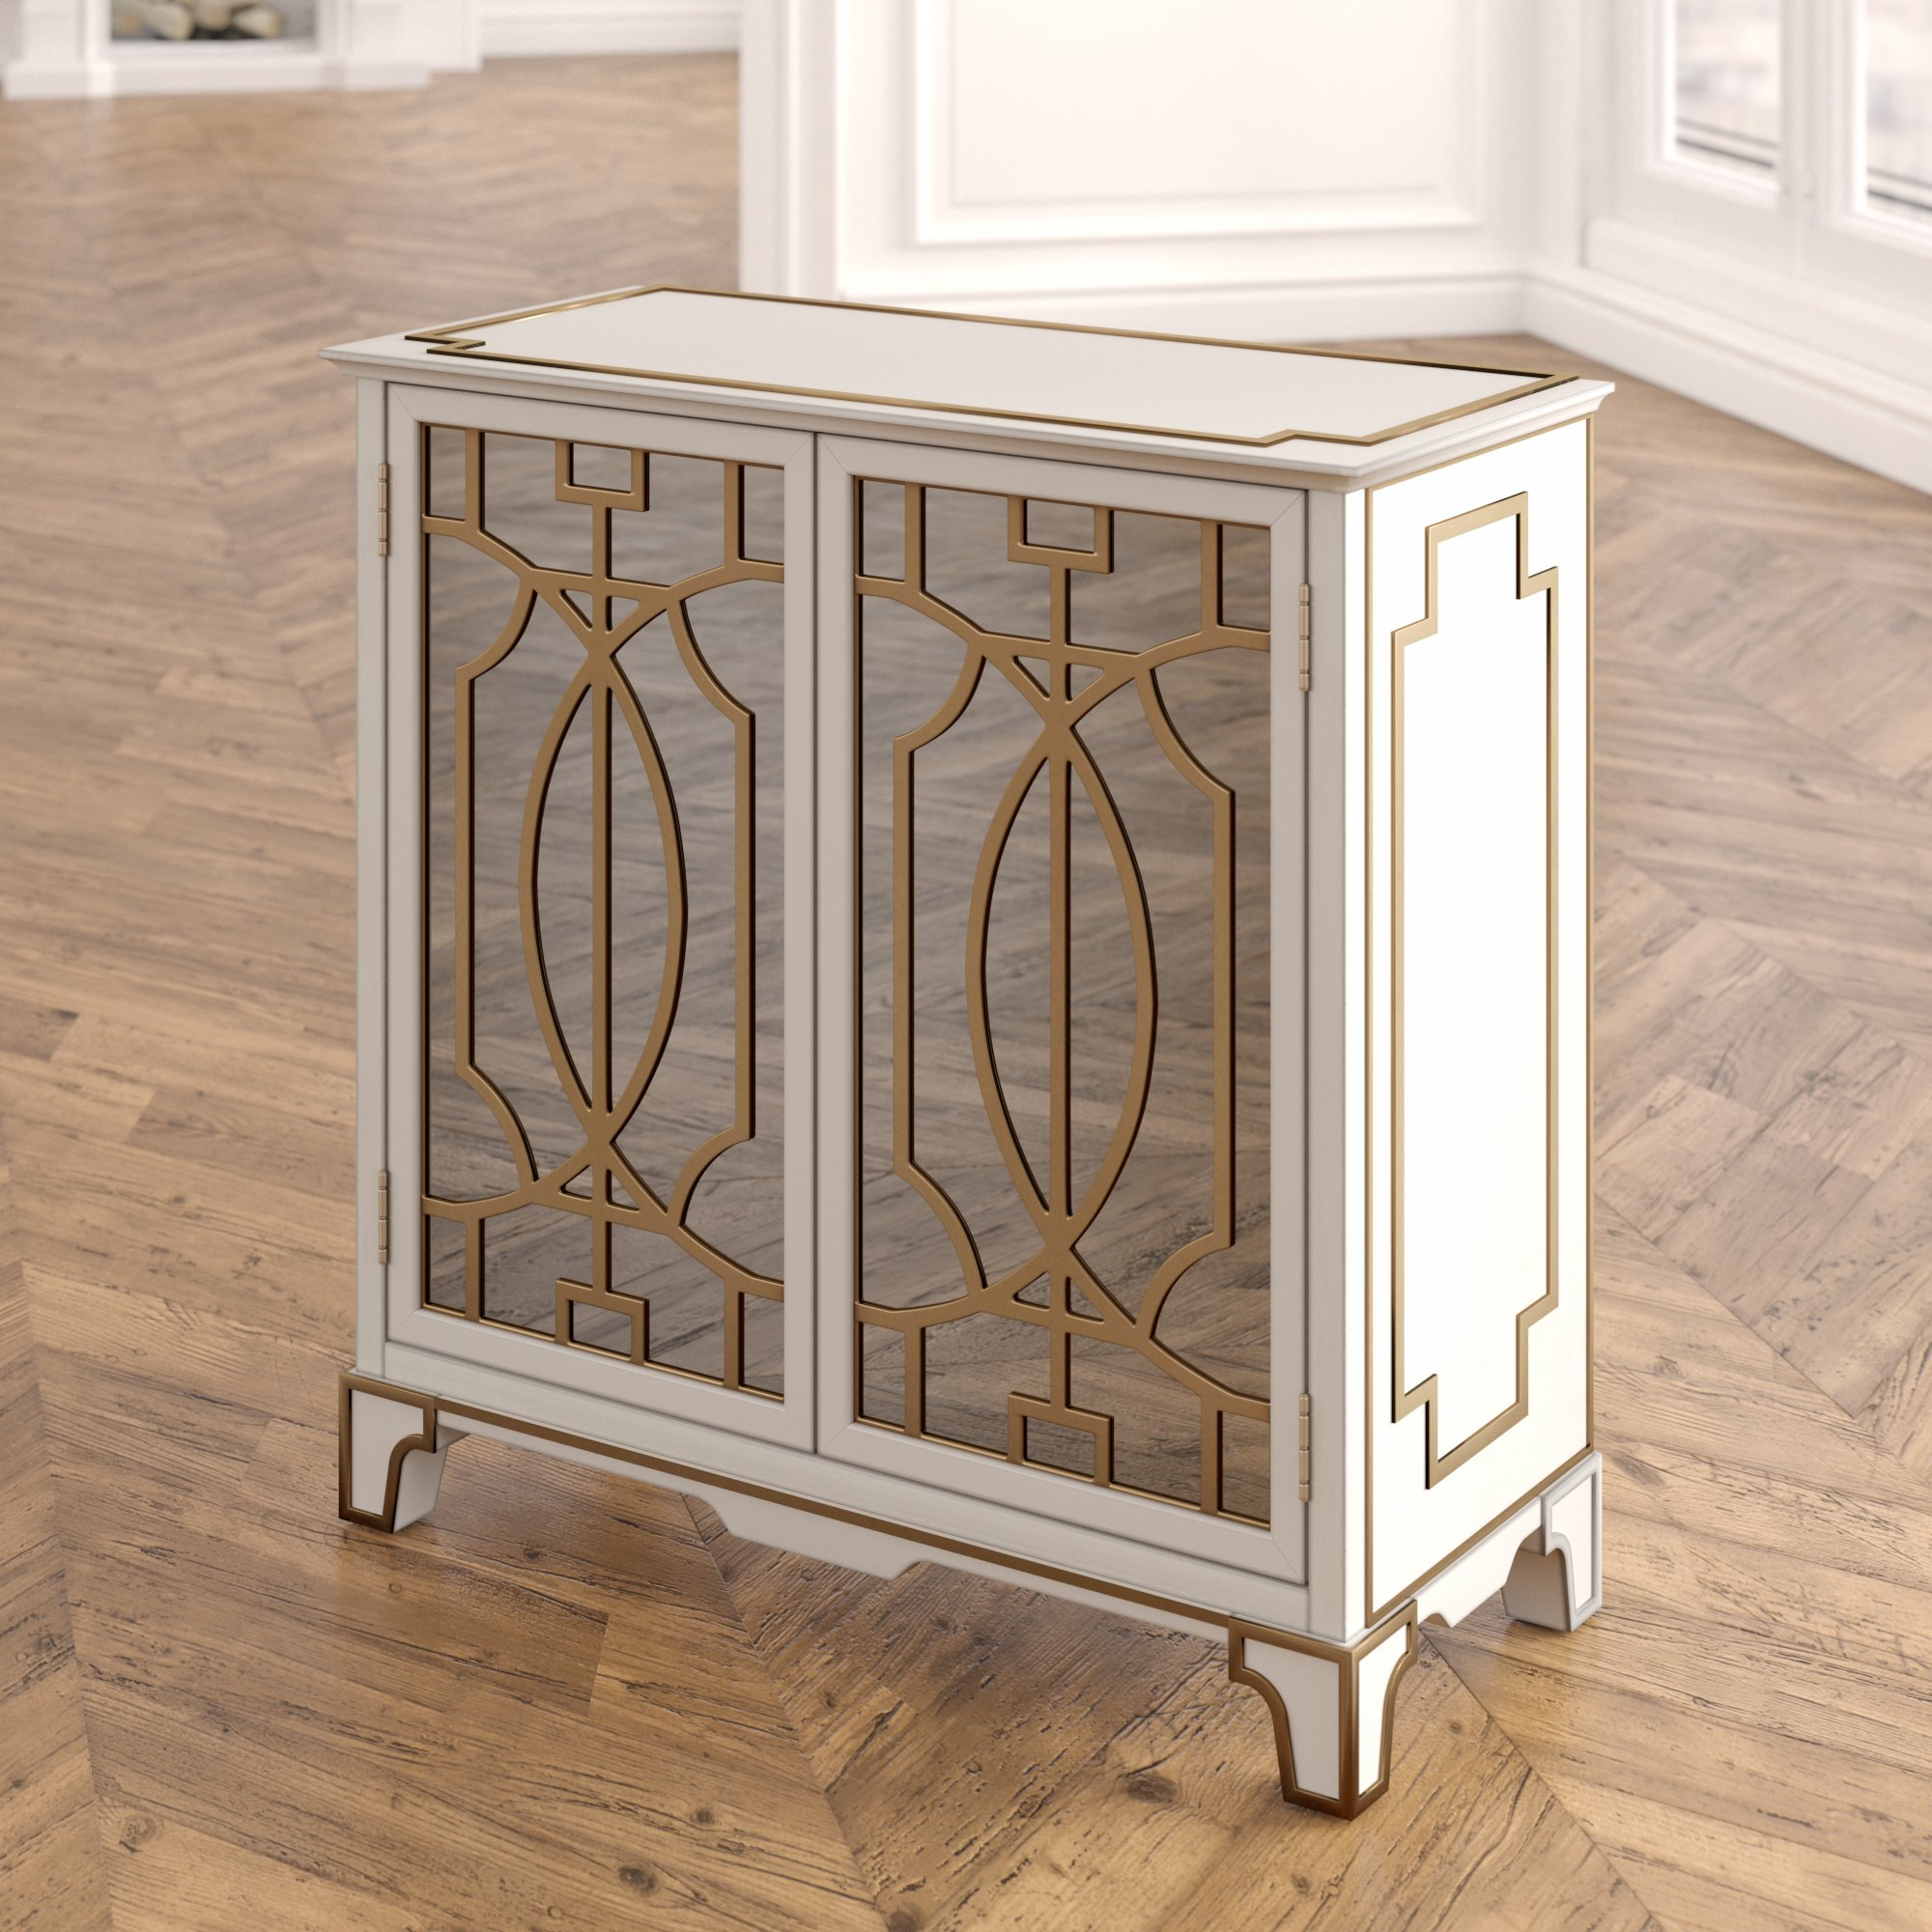 house hampton carlene traditional mirrored doors accent chest table with reviews narrow small entry couch legs side shelves turquoise home accents dale lamps gold and mirror